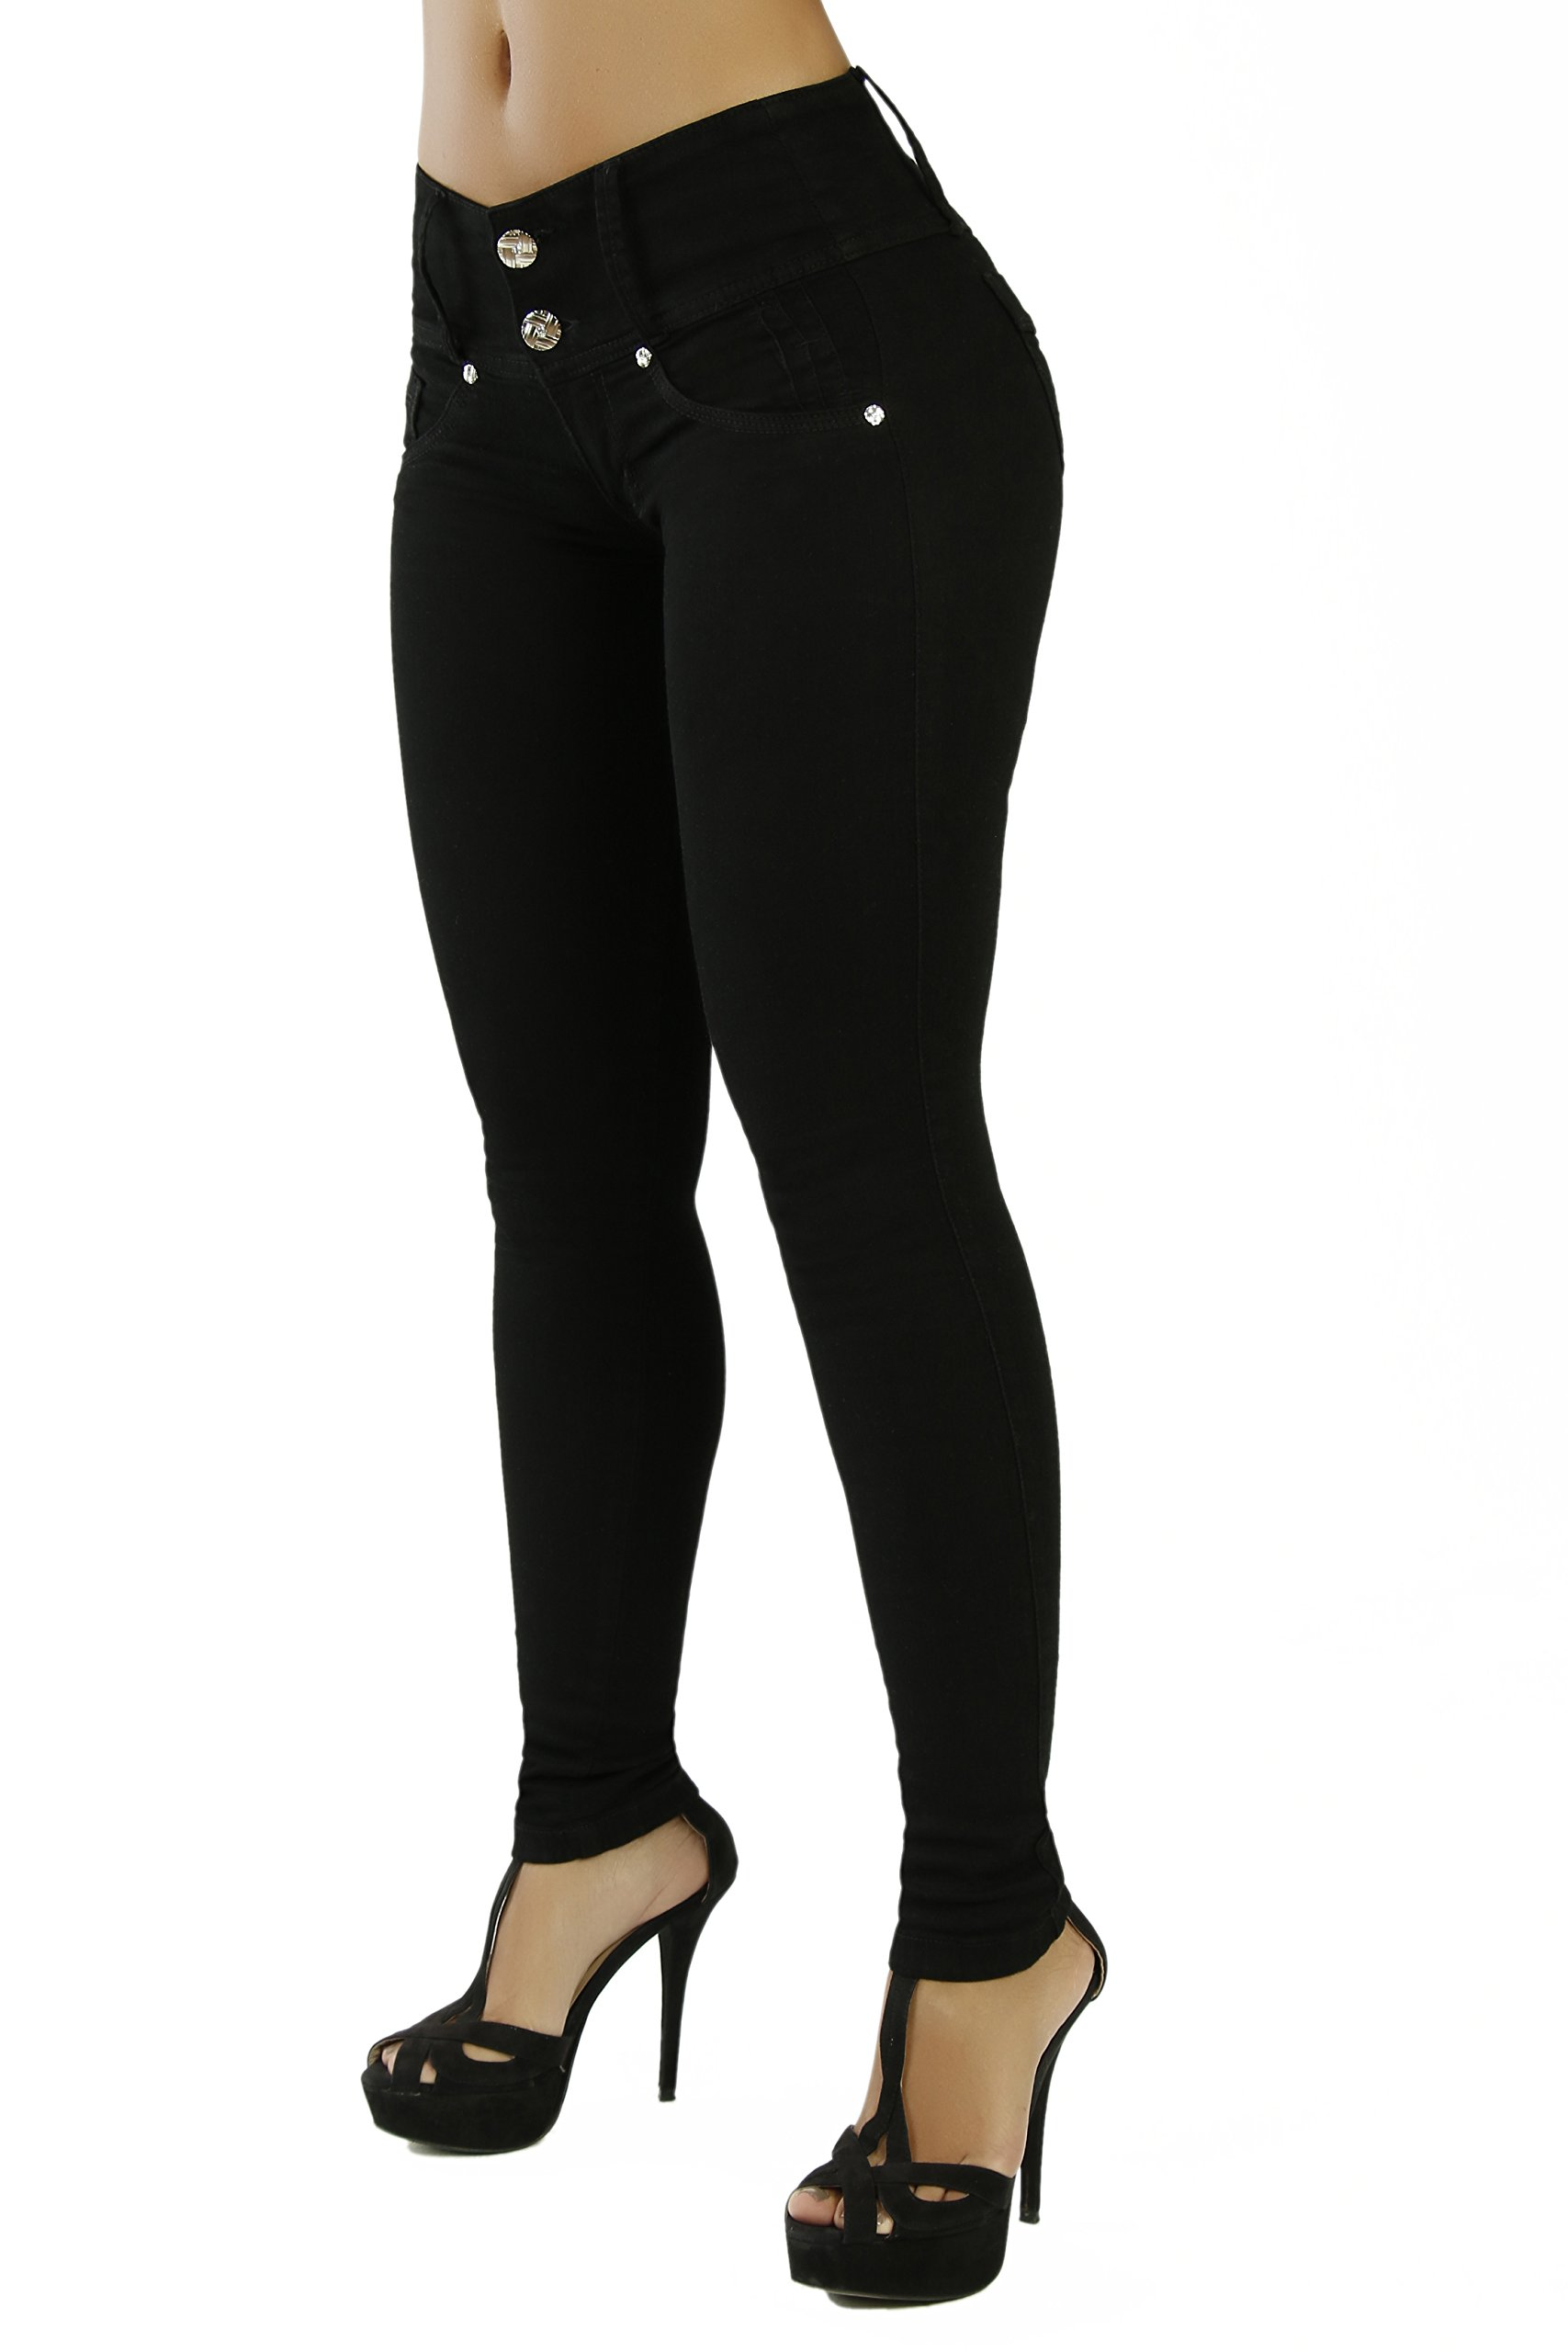 Curvify High Waisted Butt Lifting Slimming Jeans for Women - Skinny Stretch Jean 766(766, Black, 7) by Curvify (Image #1)